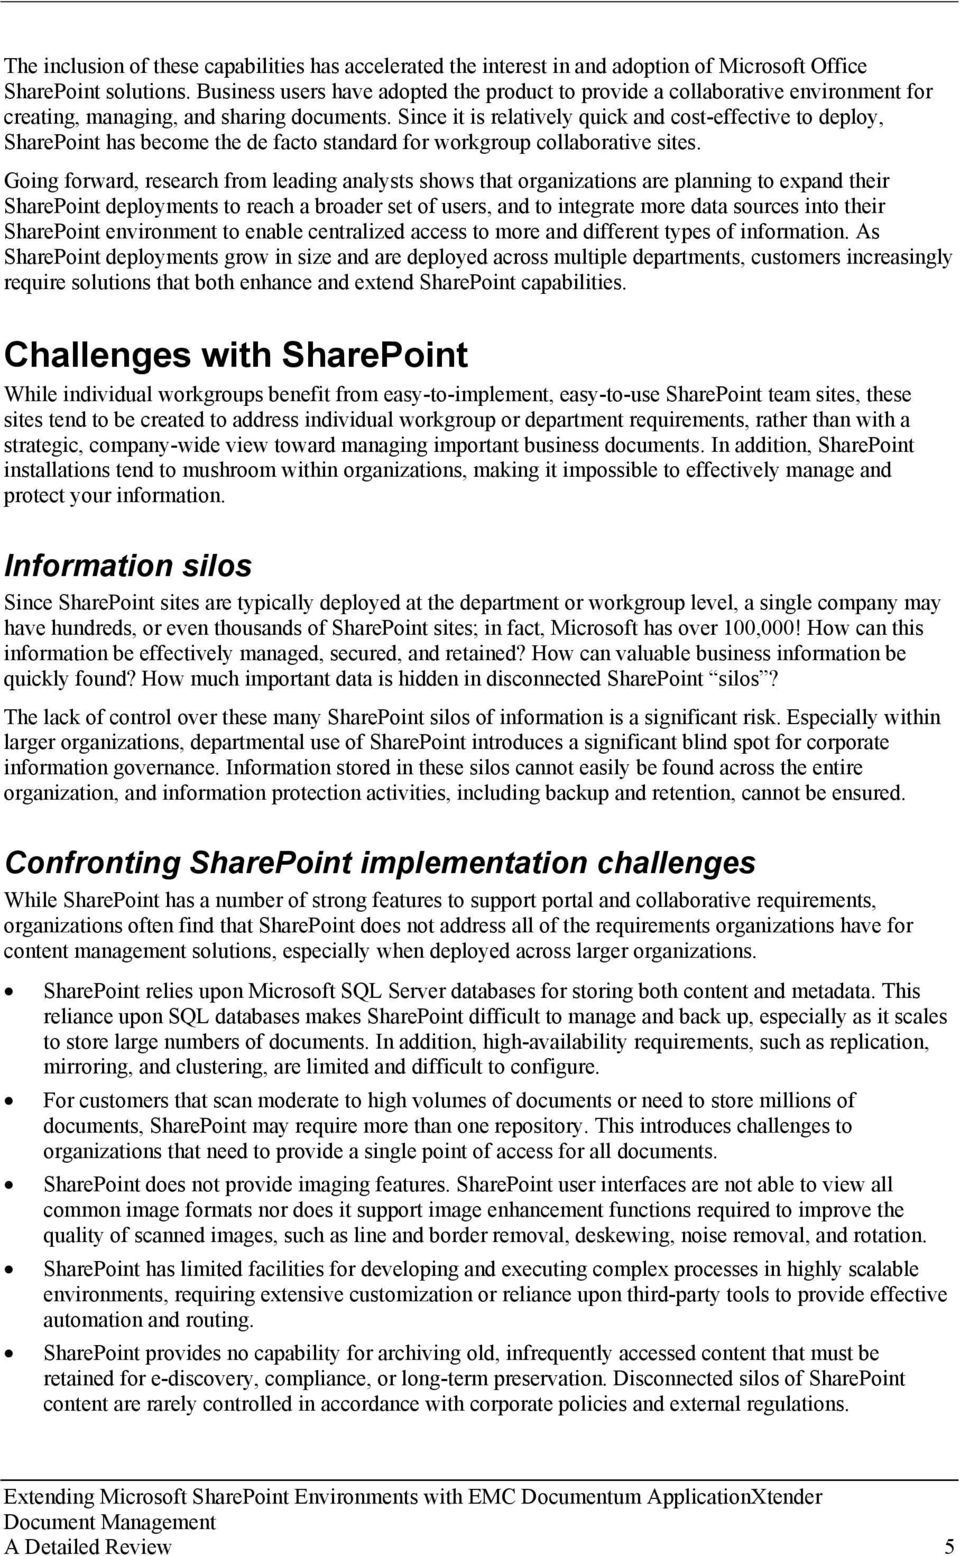 Since it is relatively quick and cost-effective to deploy, SharePoint has become the de facto standard for workgroup collaborative sites.